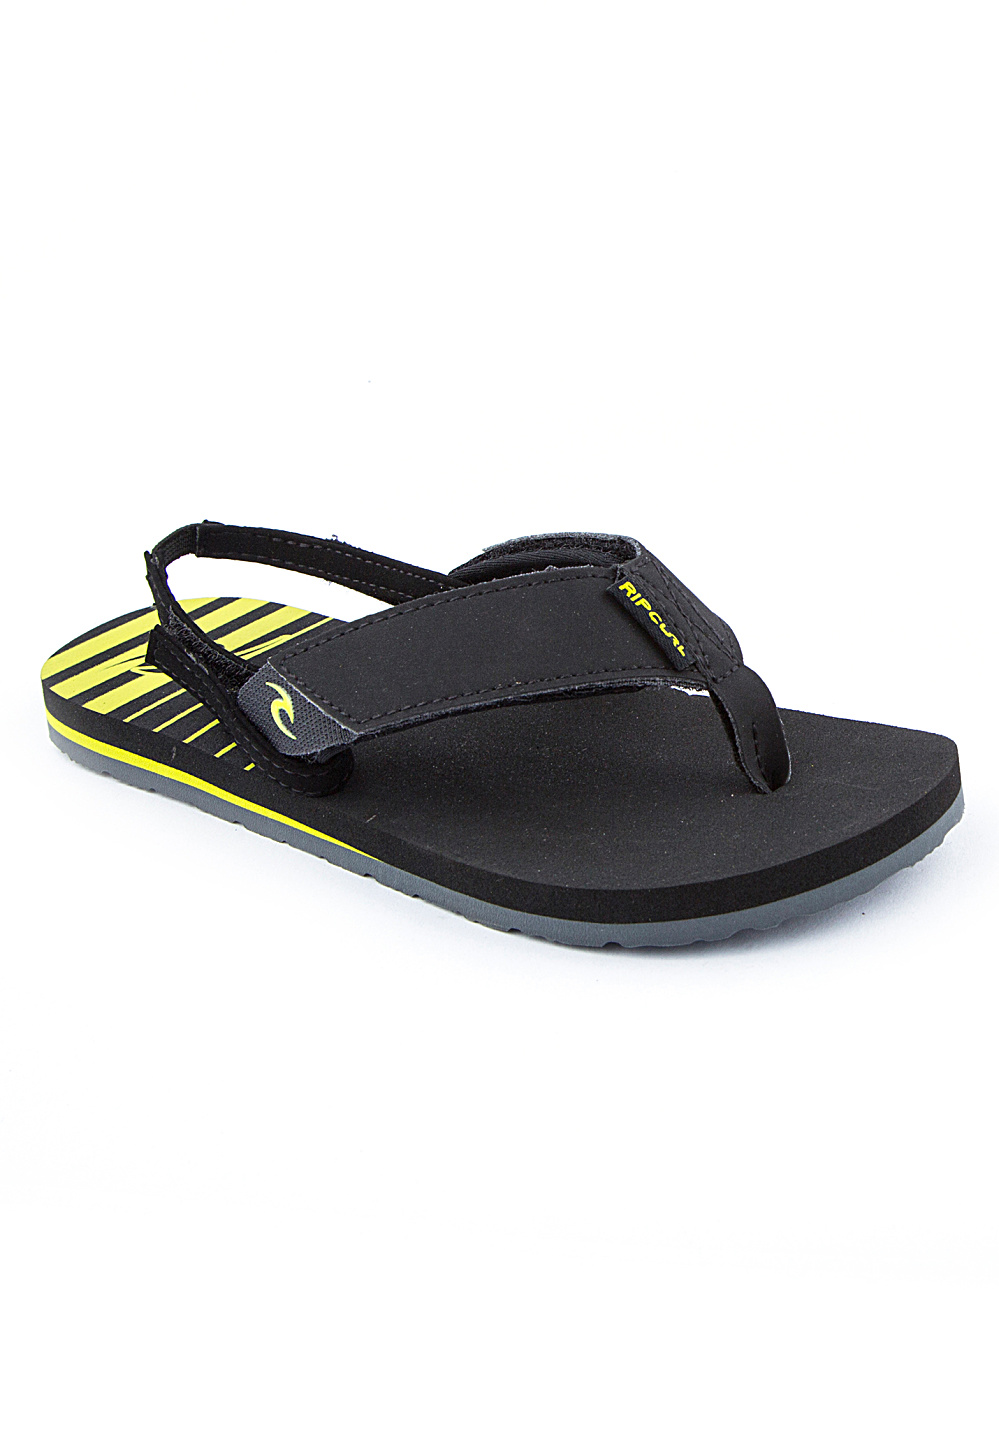 ... Rip Curl The One Groms - Sandals - Black. This product is currently out  of stock.